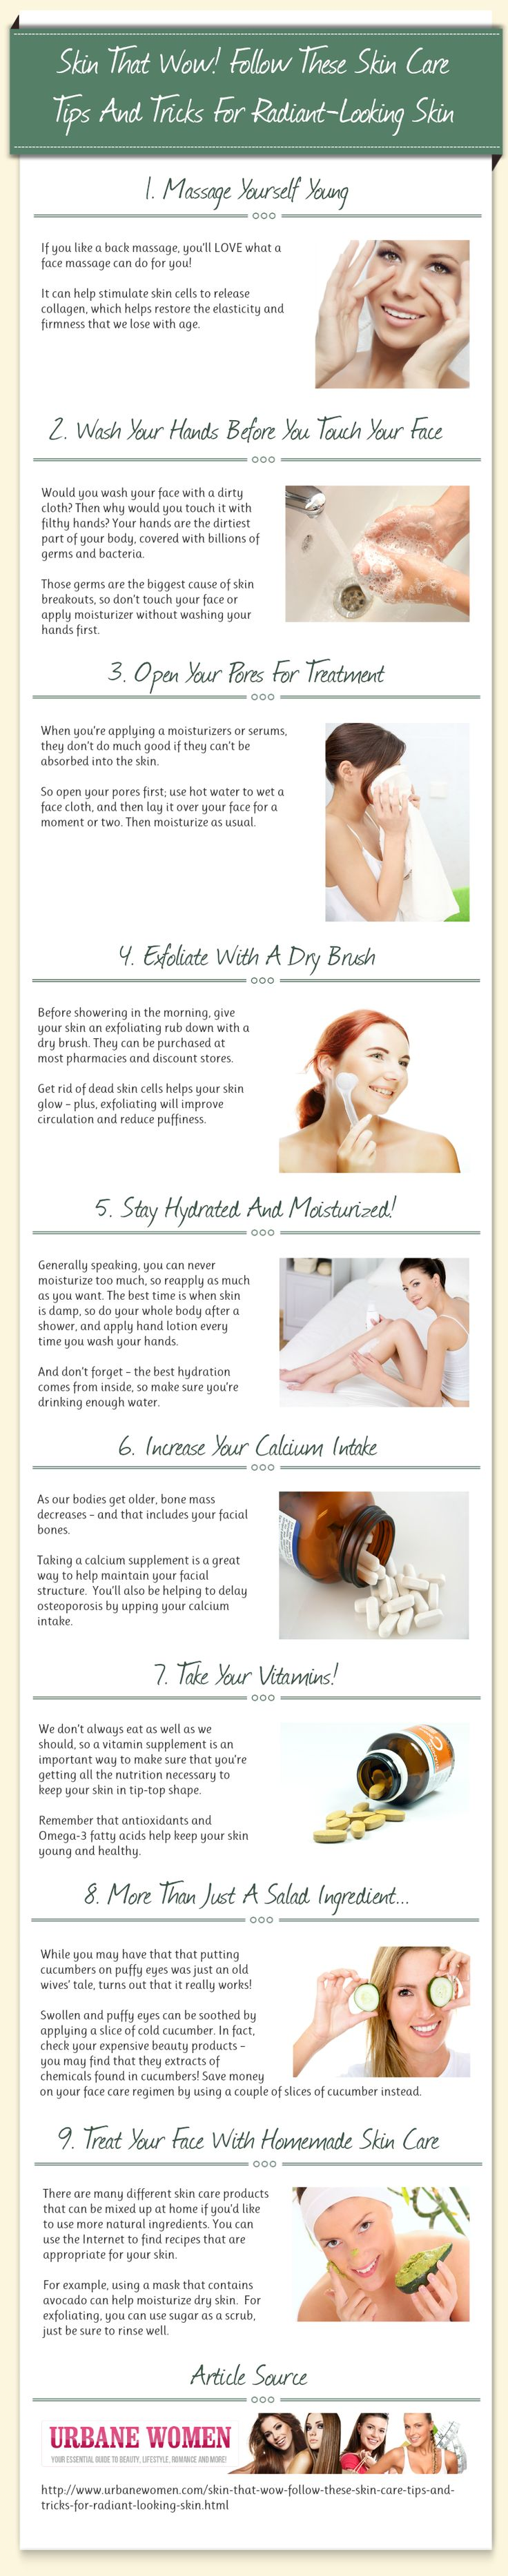 Skin That Wow! Follow These Skin Care Tips And Tricks For Radiant-Looking Skin [Infographic]